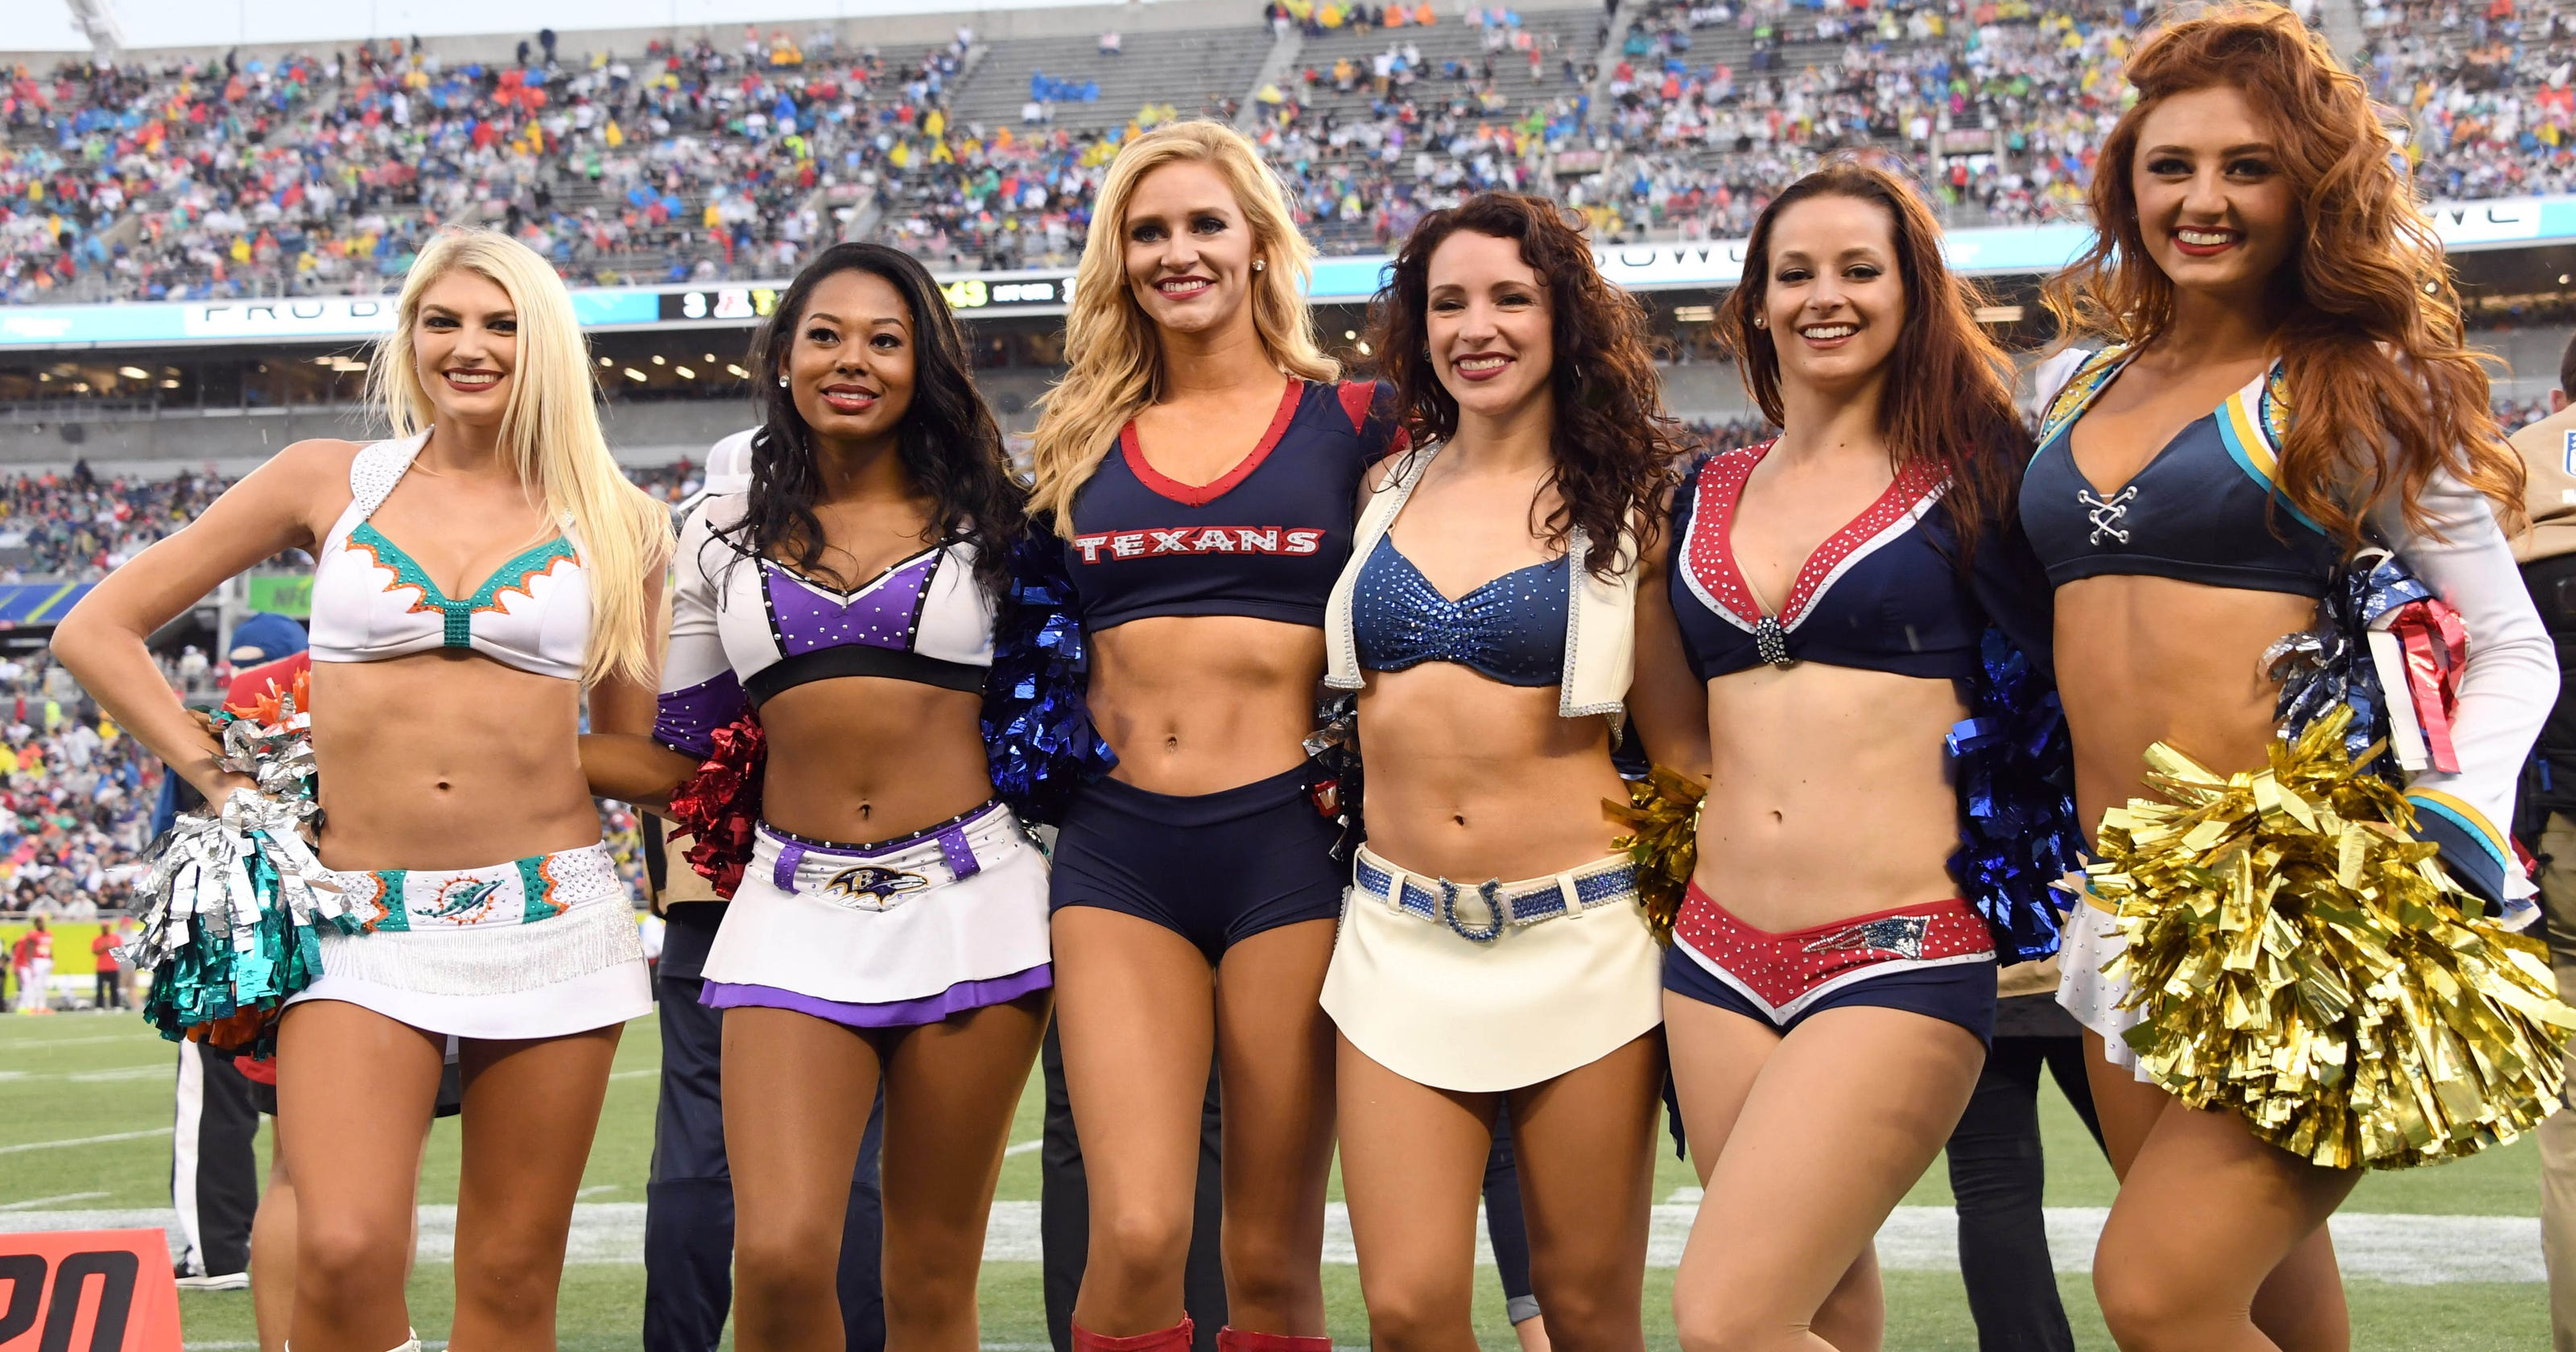 eca47351 NFL: No place for cheerleaders in 2018